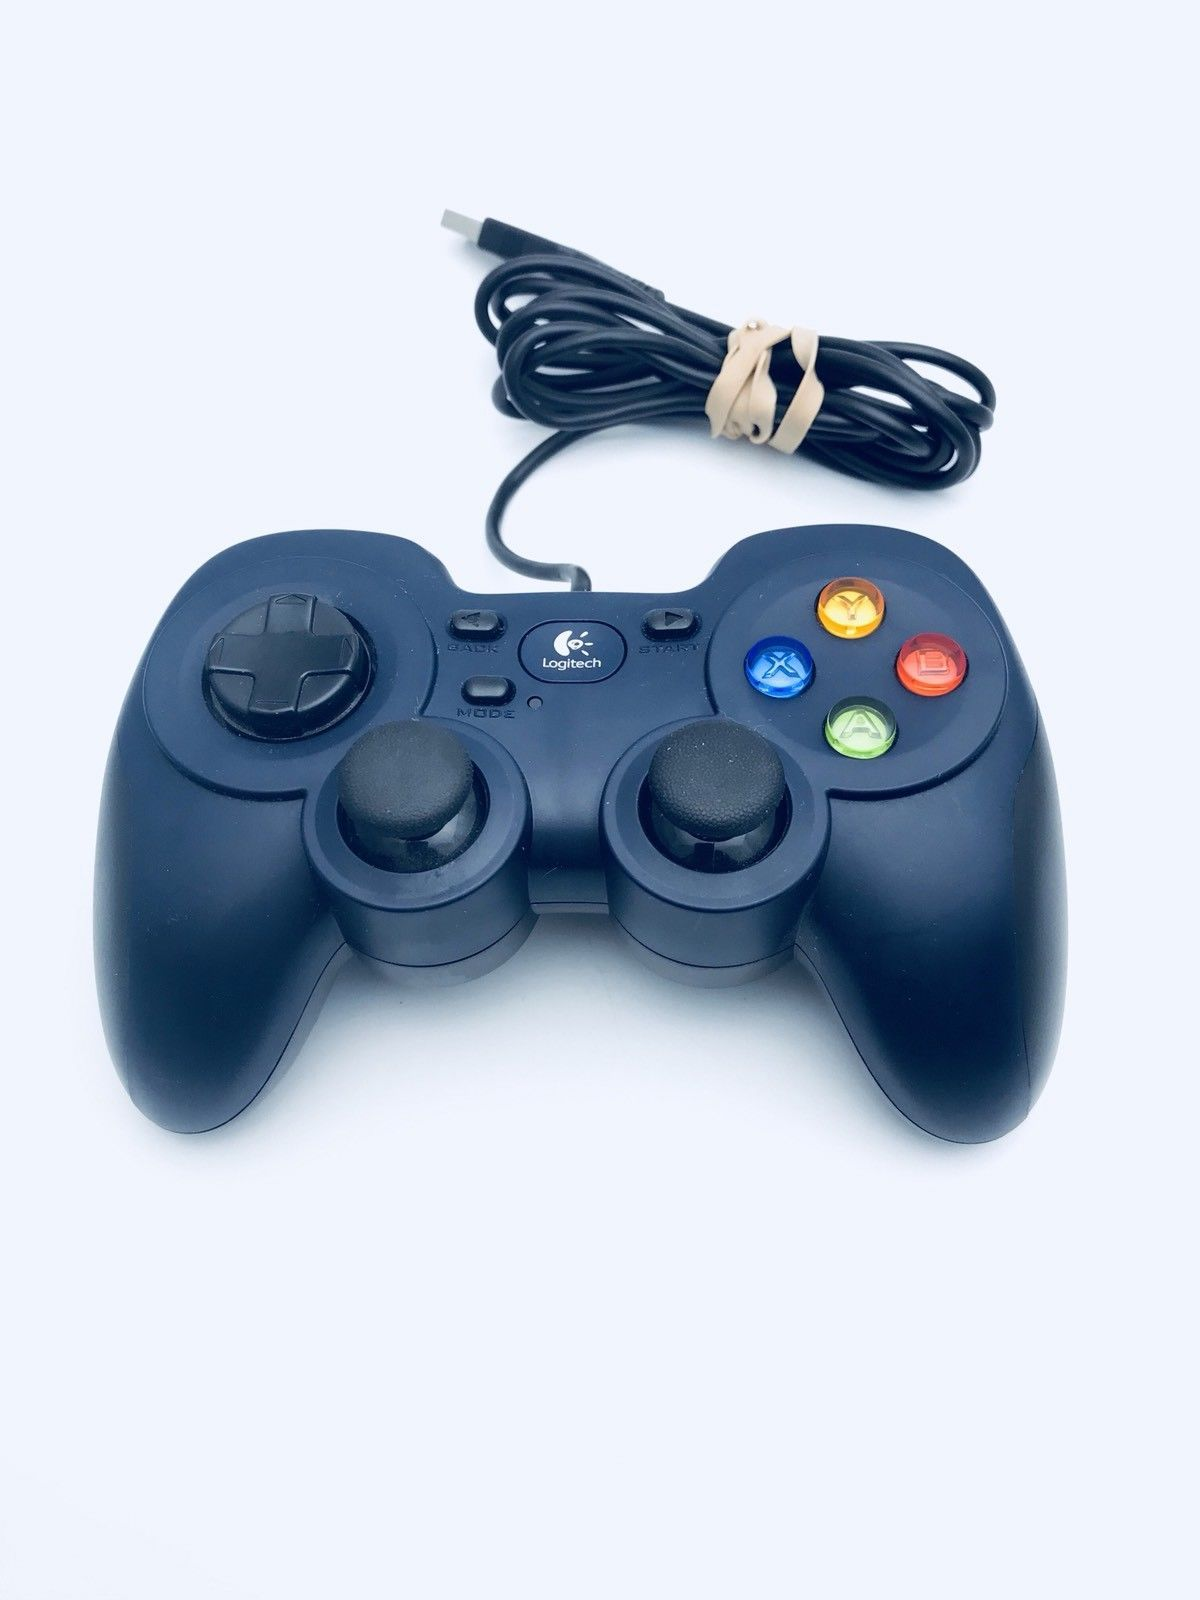 53baf7da8b9 Find many great new & used options and get the best deals for Logitech F310  (940-000115) Gamepads at the best online prices at eBay! Free delivery for  many ...